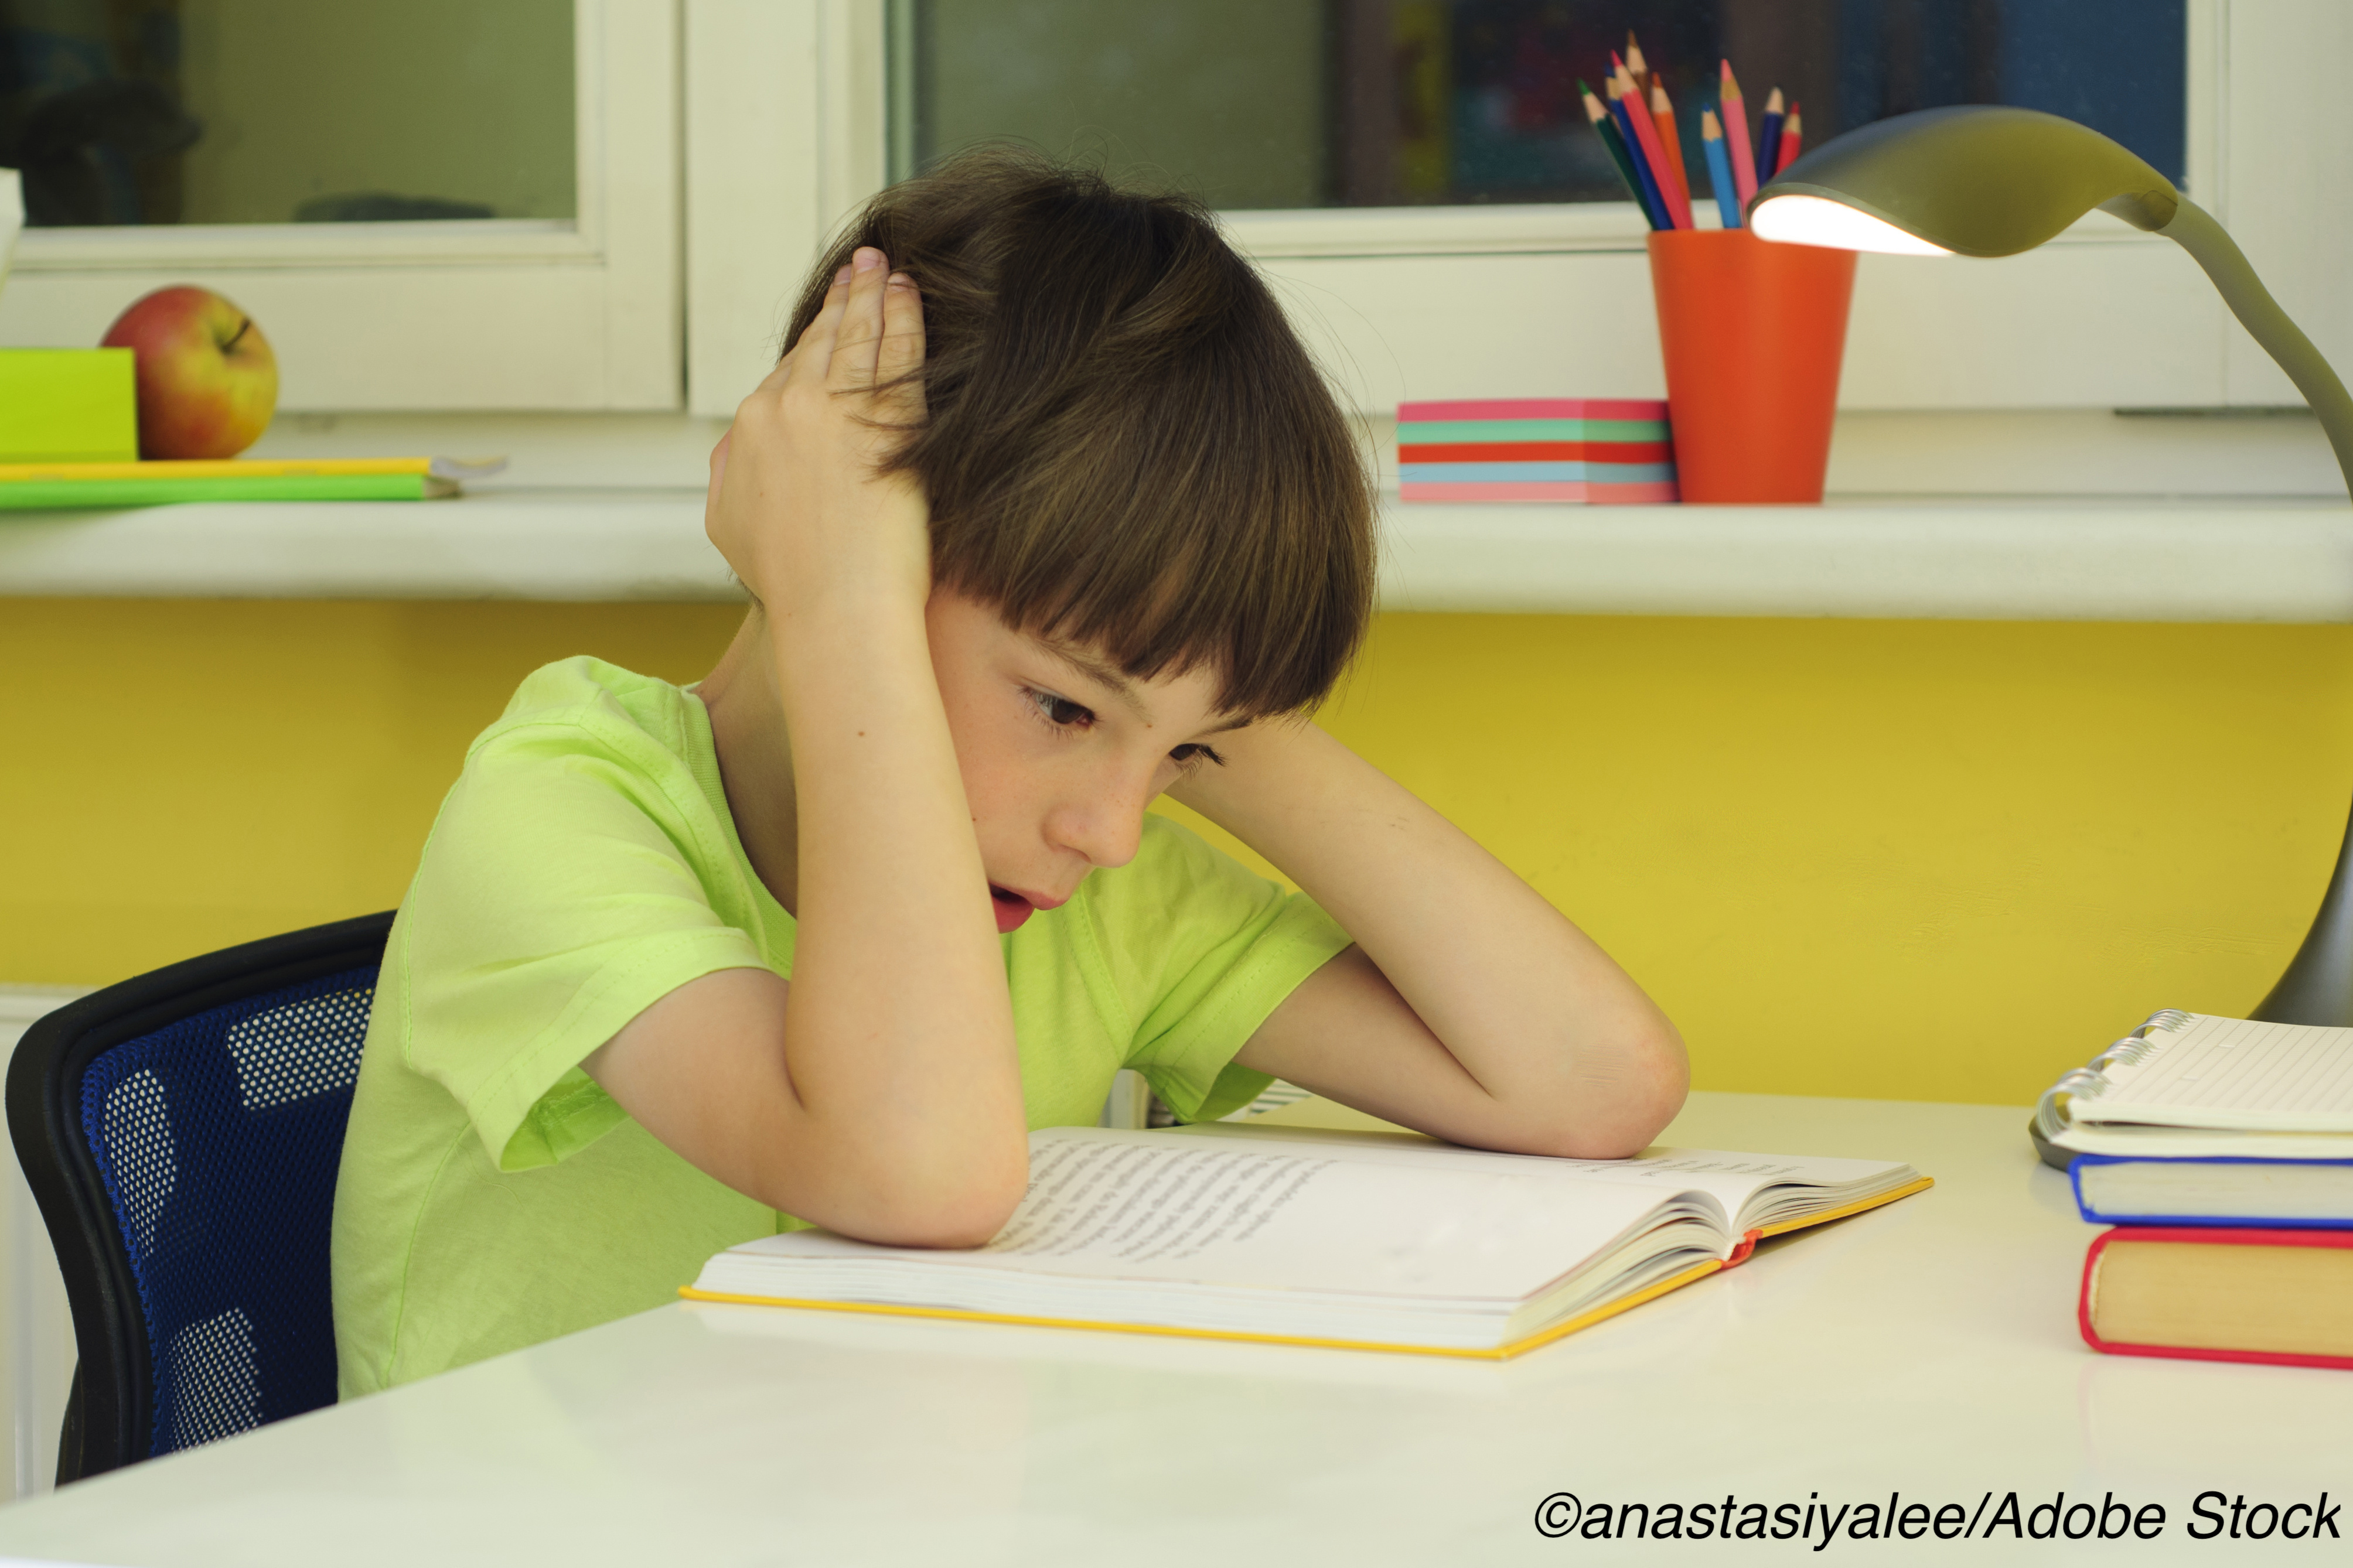 Pediatricians: Screen for Dyslexia Screening Early